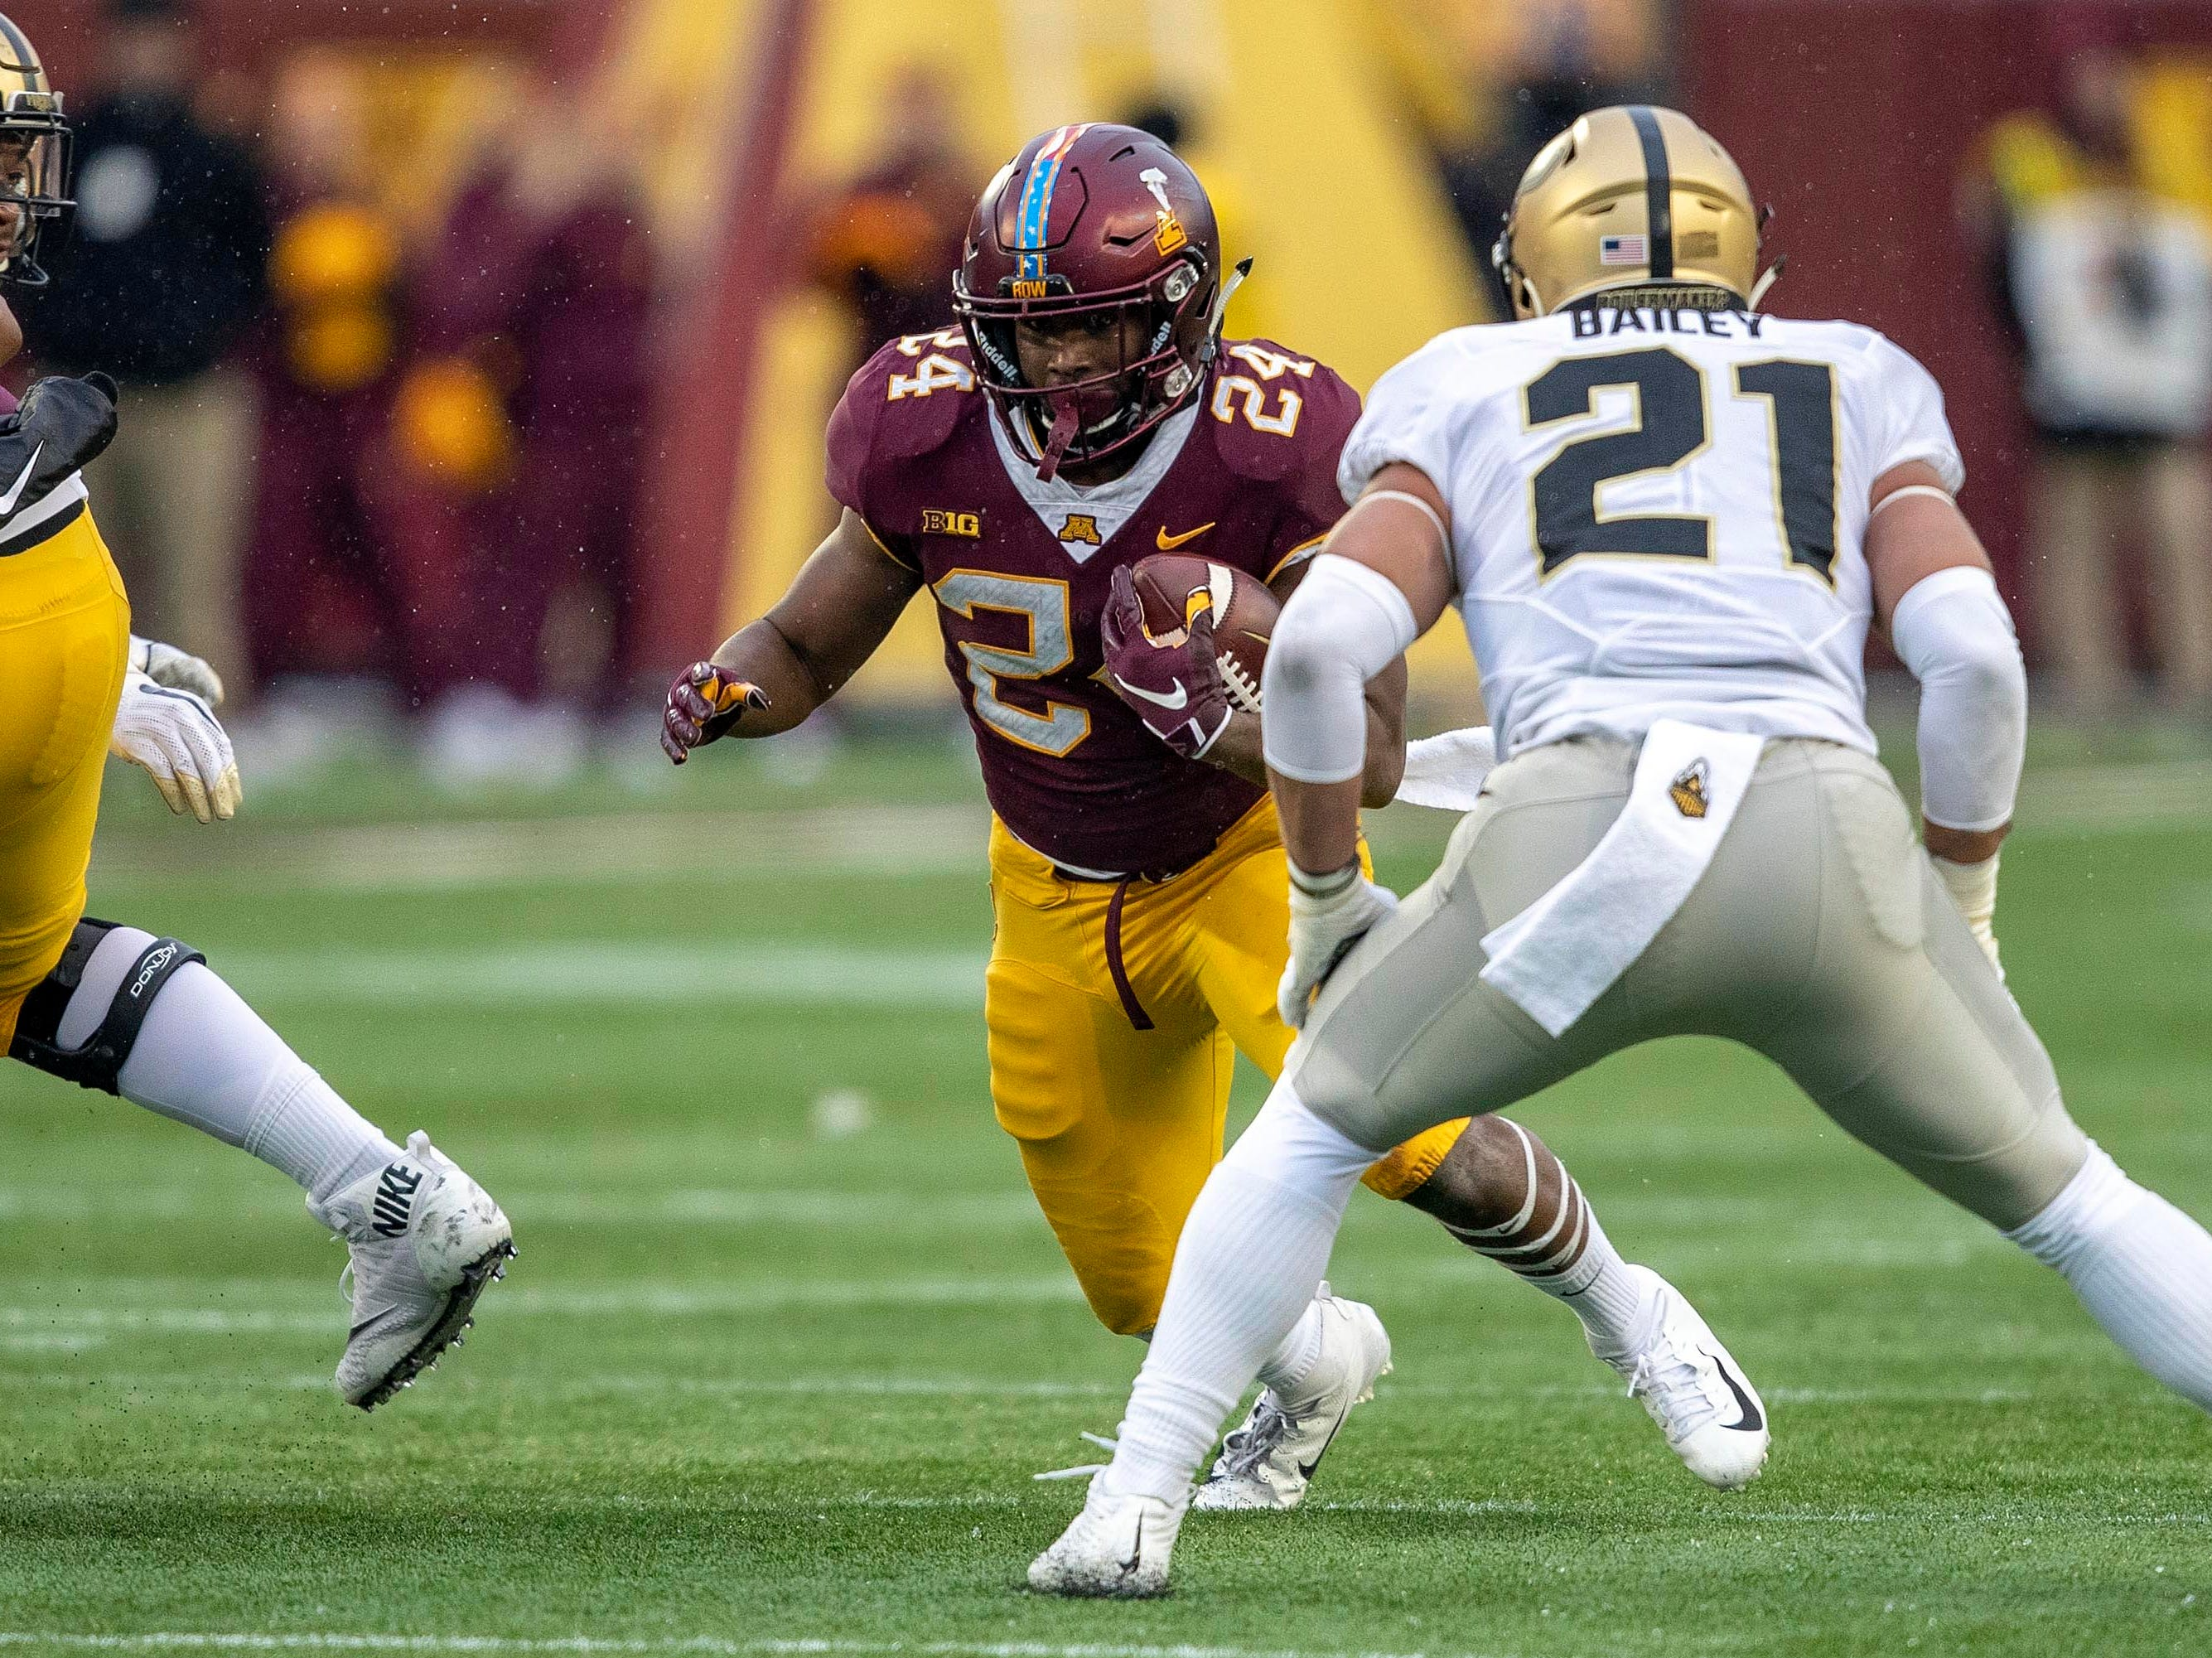 Nov 10, 2018; Minneapolis, MN, USA; Minnesota Golden Gophers running back Mohamed Ibrahim (24) rushes with the ball as Purdue Boilermakers linebacker Markus Bailey (21) plays defense in the first half at TCF Bank Stadium. Mandatory Credit: Jesse Johnson-USA TODAY Sports